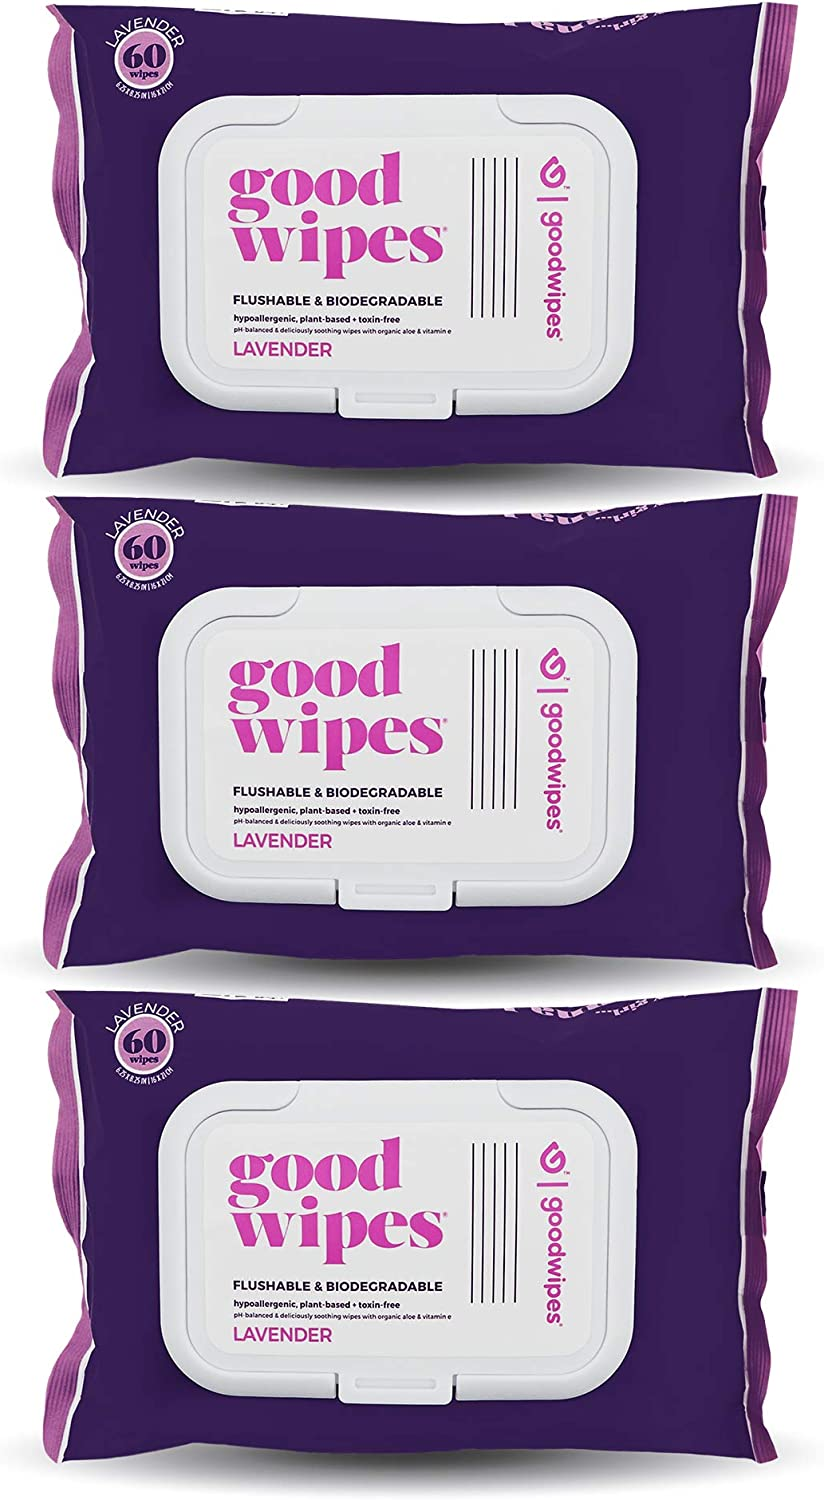 Goodwipes Wet Wipes, Lavender Scent, with Re-Sealable packaging, Flushable and PH Balanced 180 Count (3 Packs of 60): Beauty